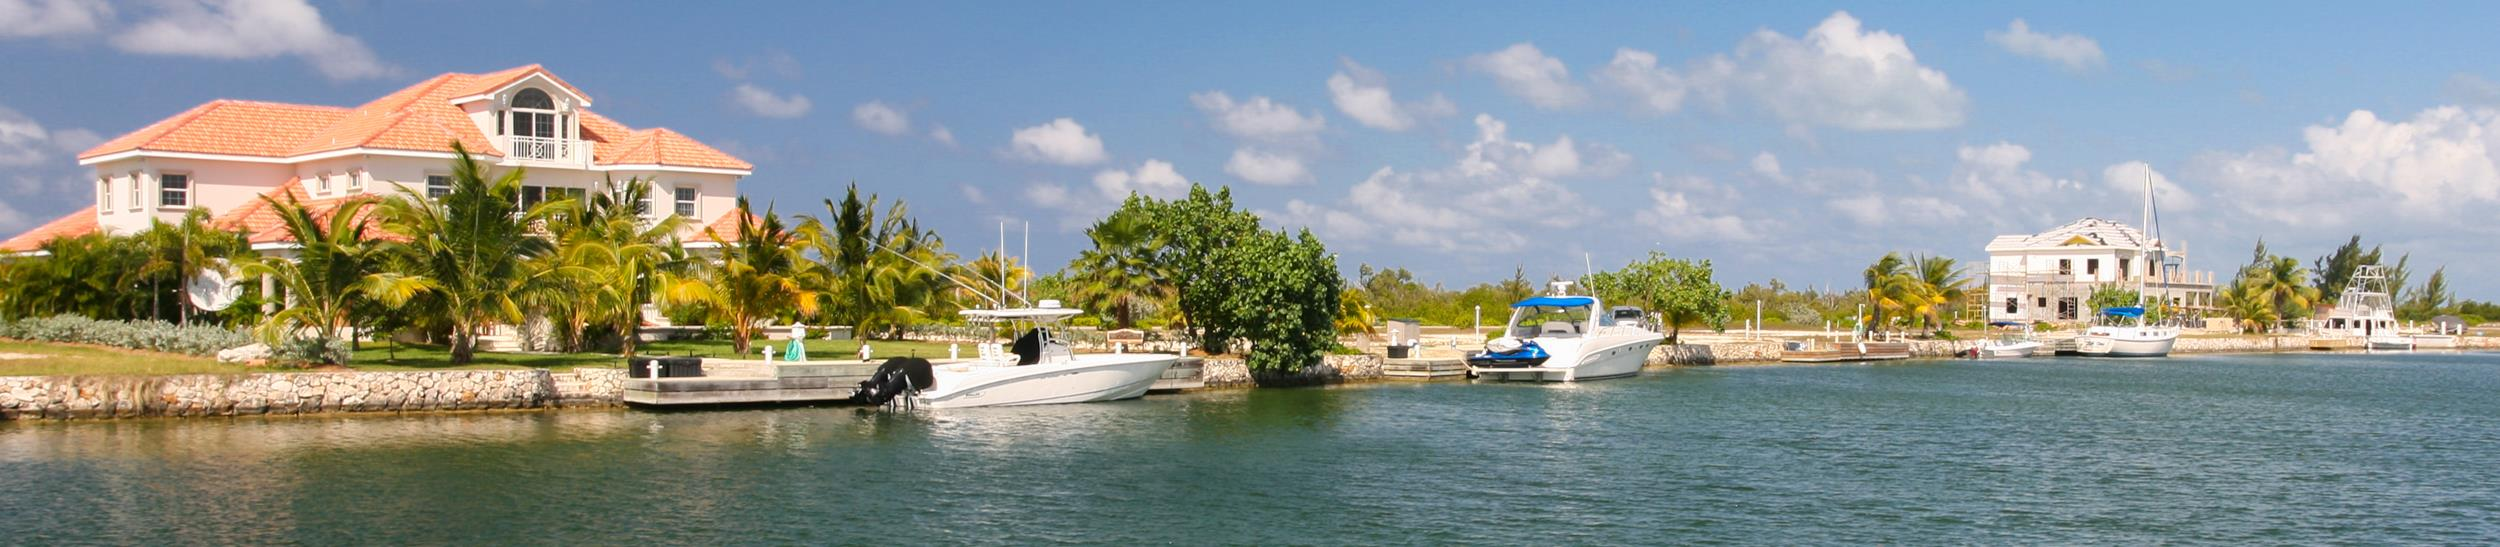 View across the canal in The Shores, Grand Cayman